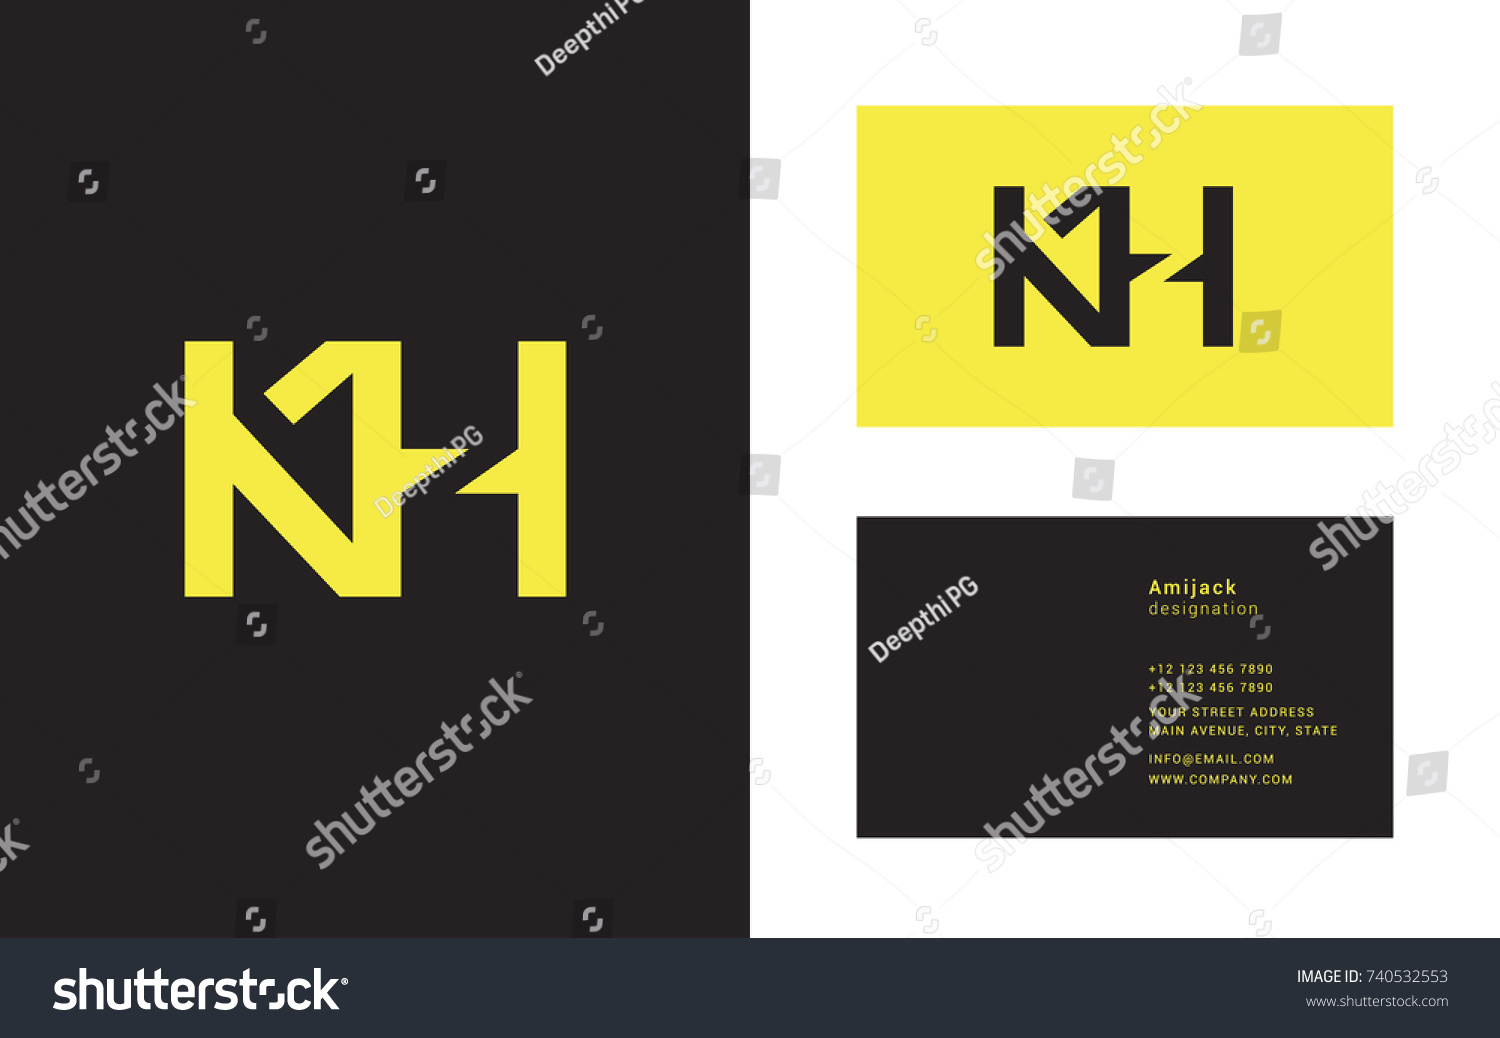 K h double letter logo design stock vector 740532553 shutterstock k h double letter logo design with business card template magicingreecefo Image collections